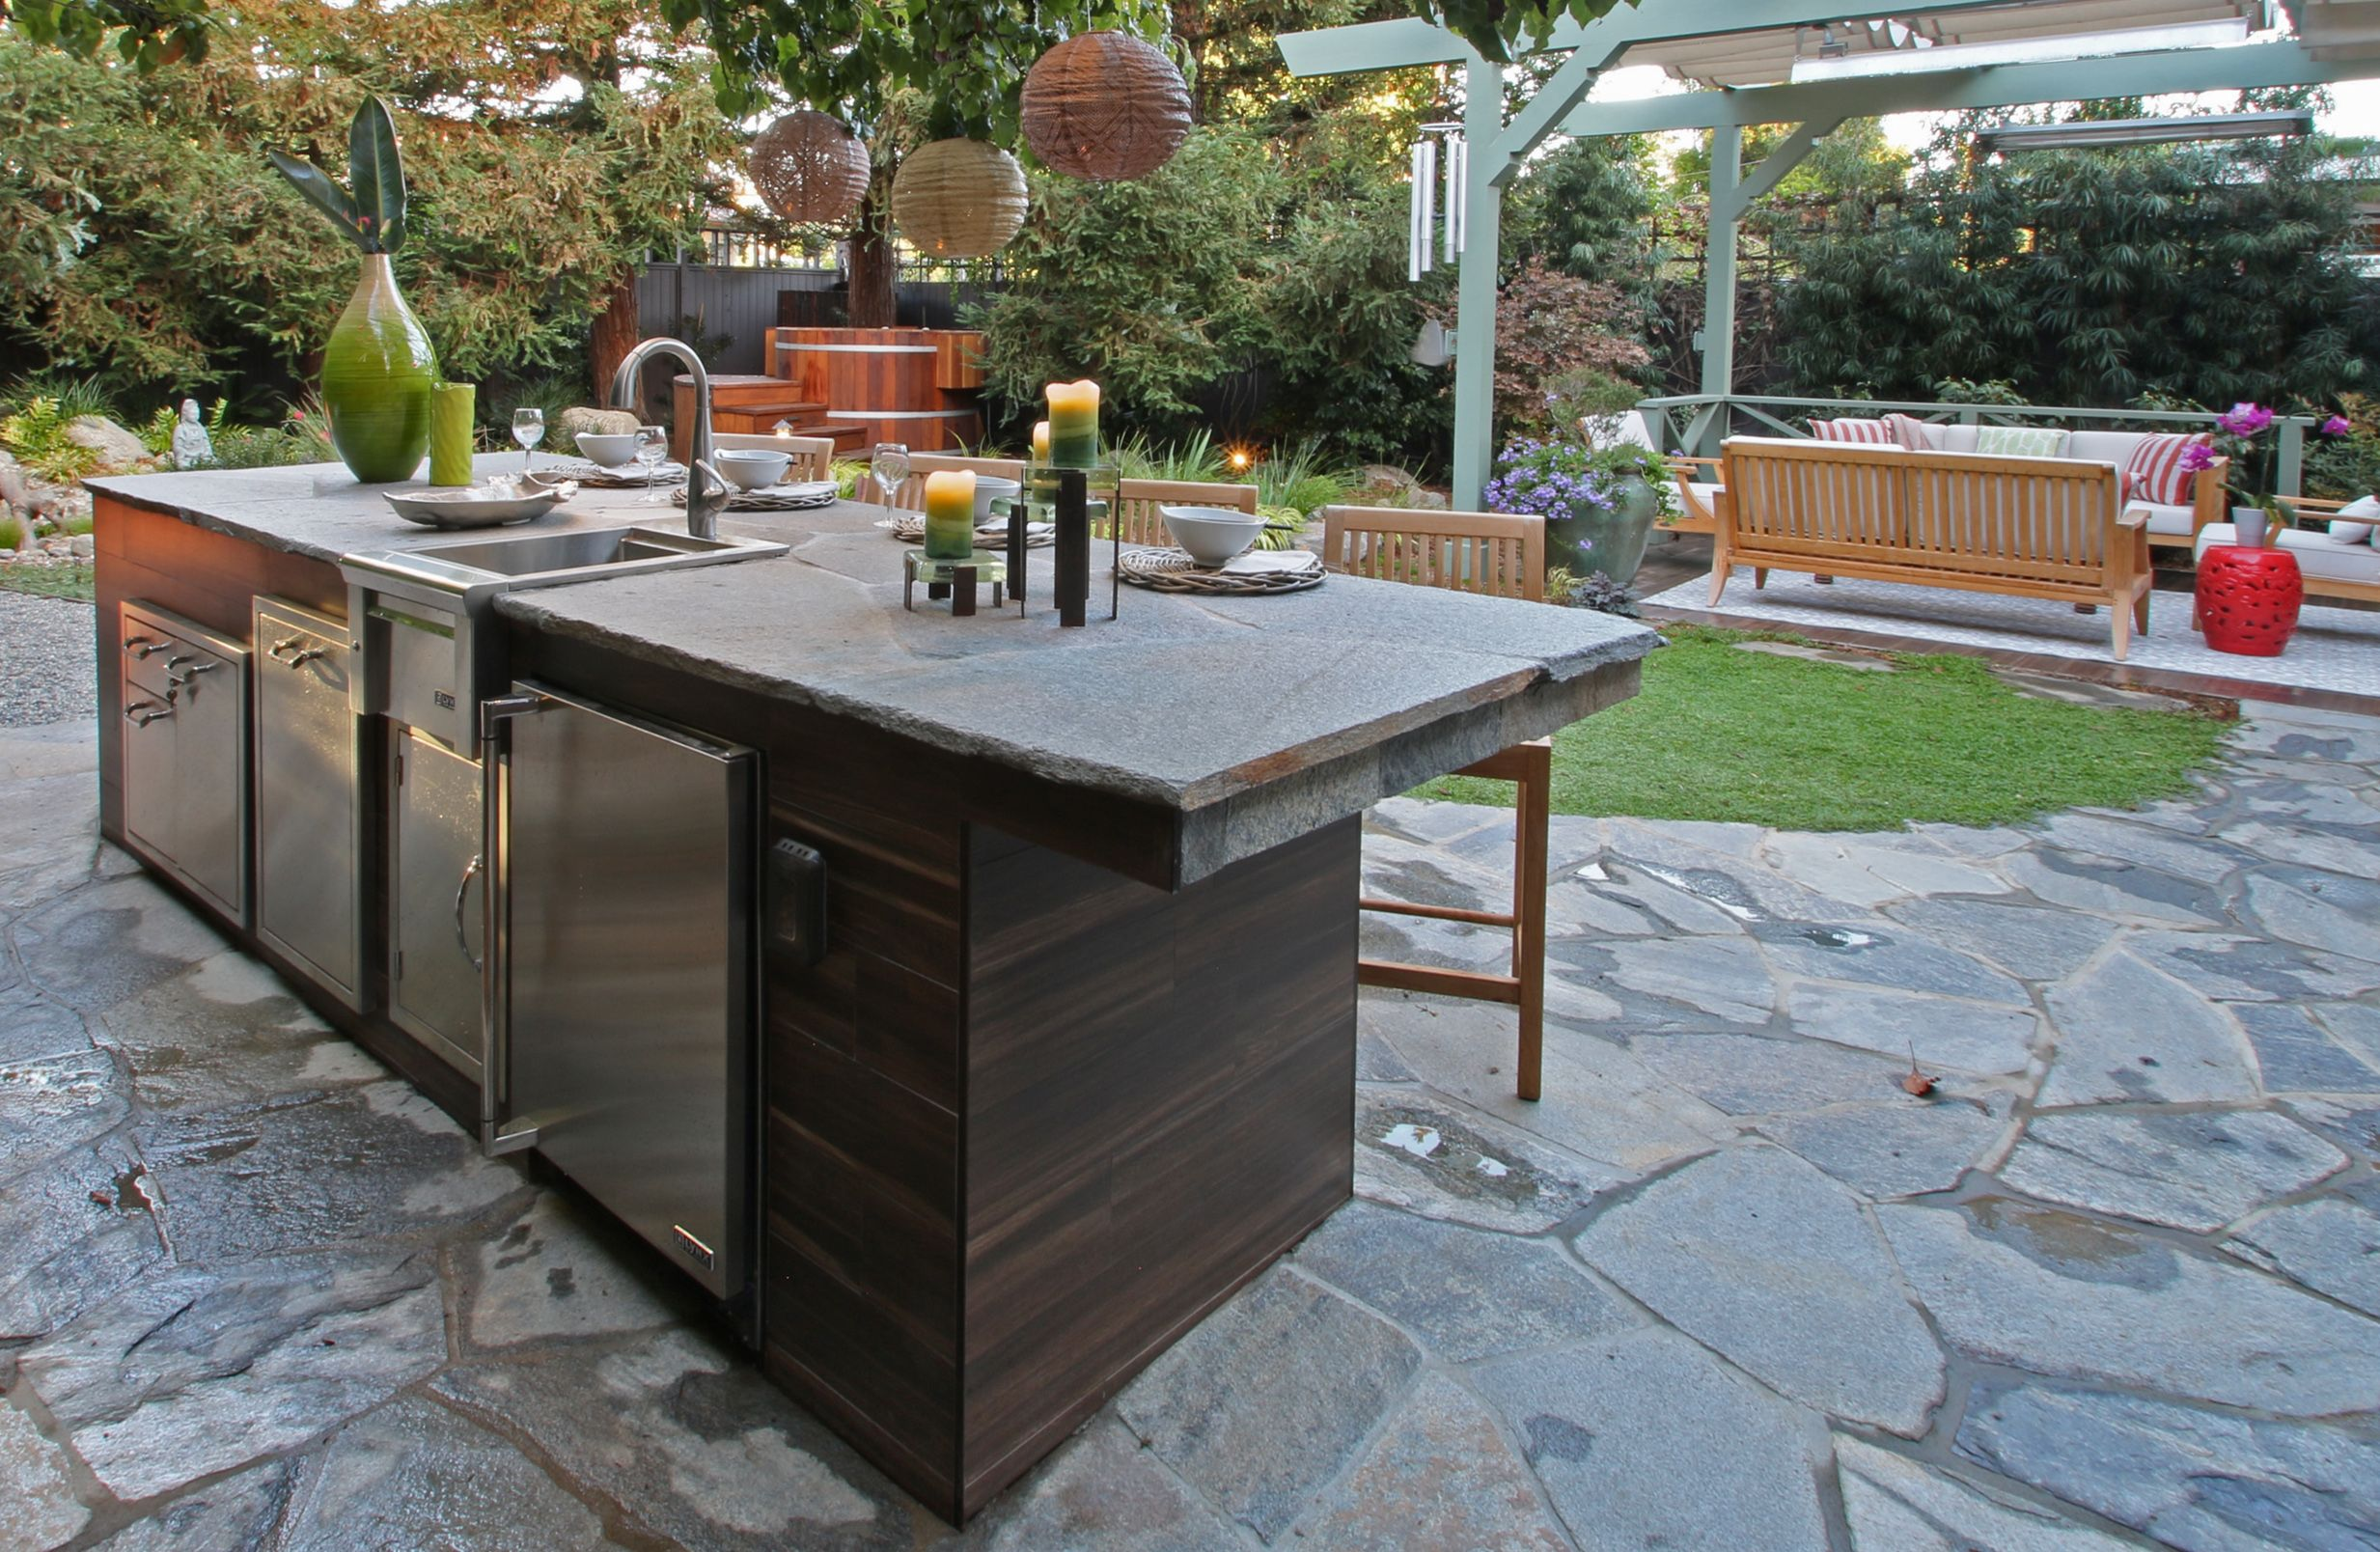 Outdoor great for entertaining. Outdoor